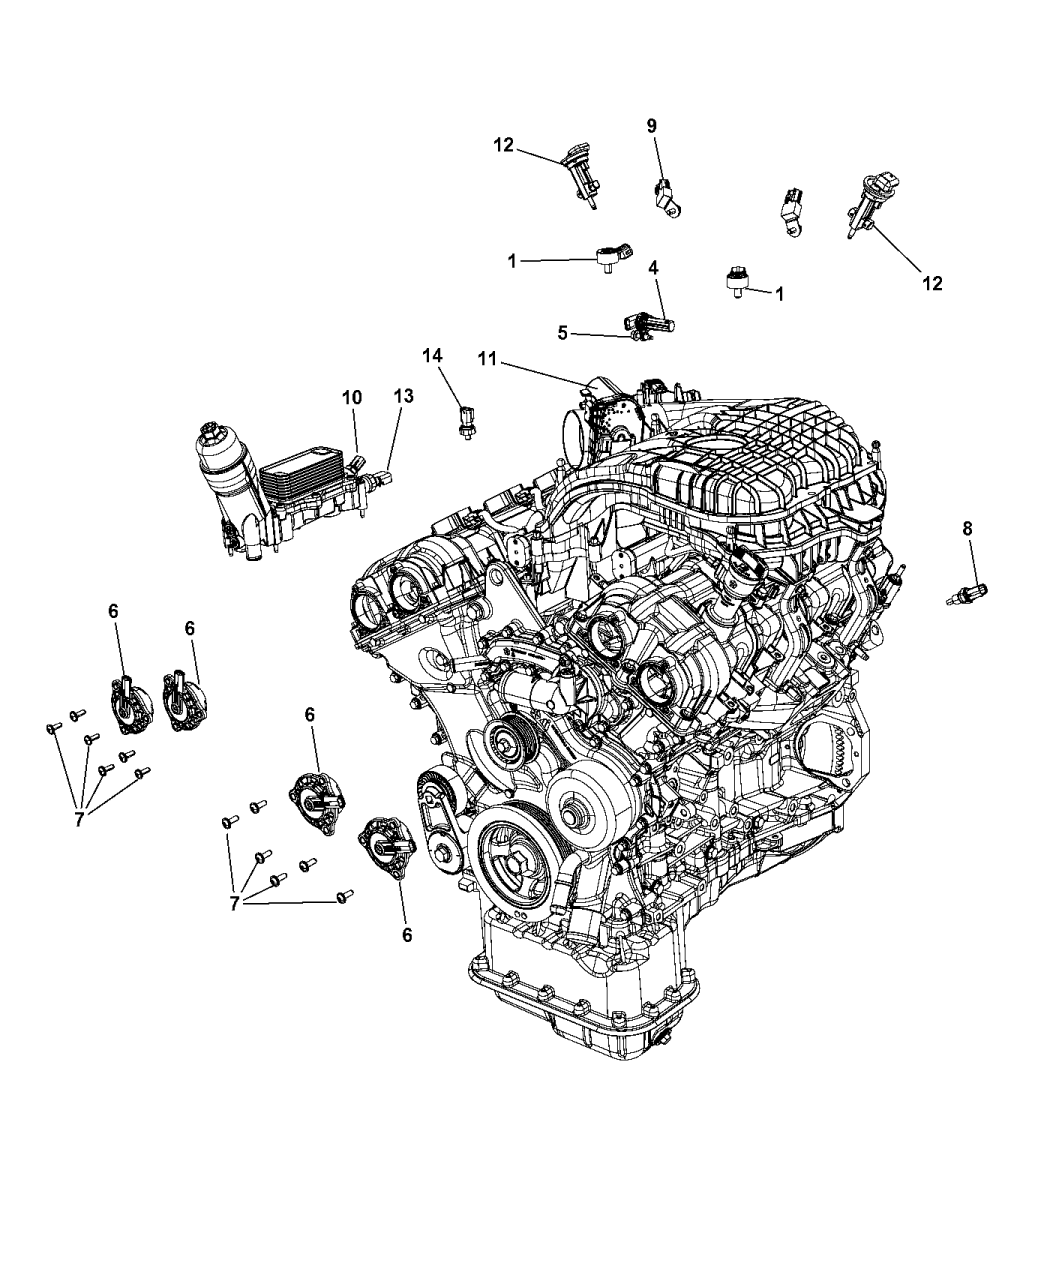 2015 Dodge Grand Caravan Sensors - Engine